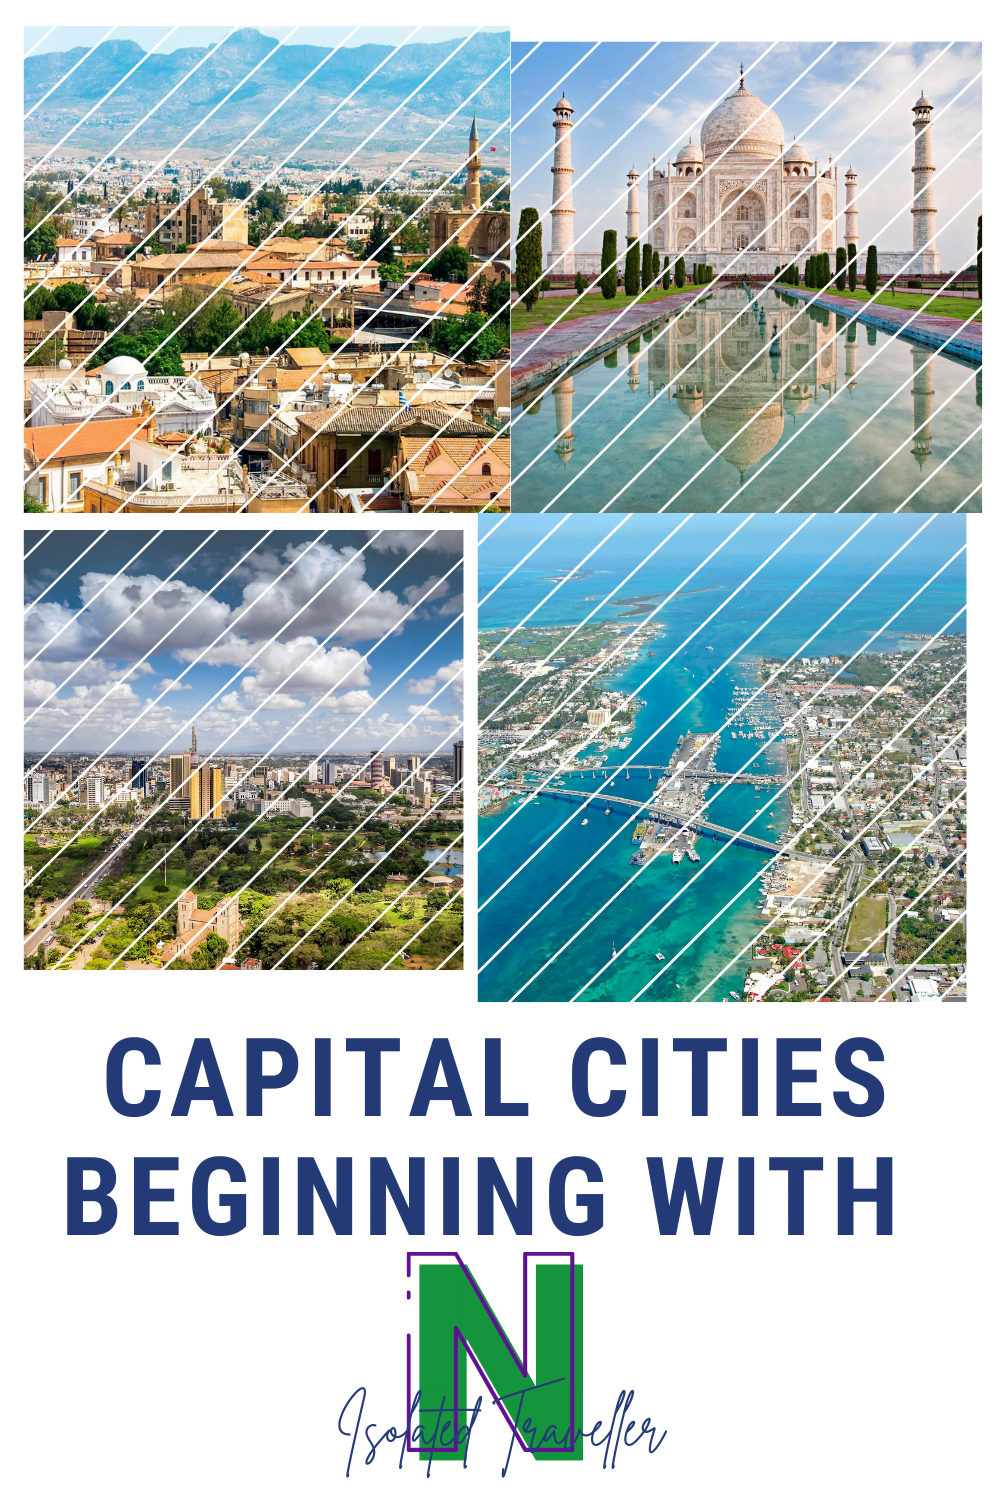 Capital Cities beginning with N